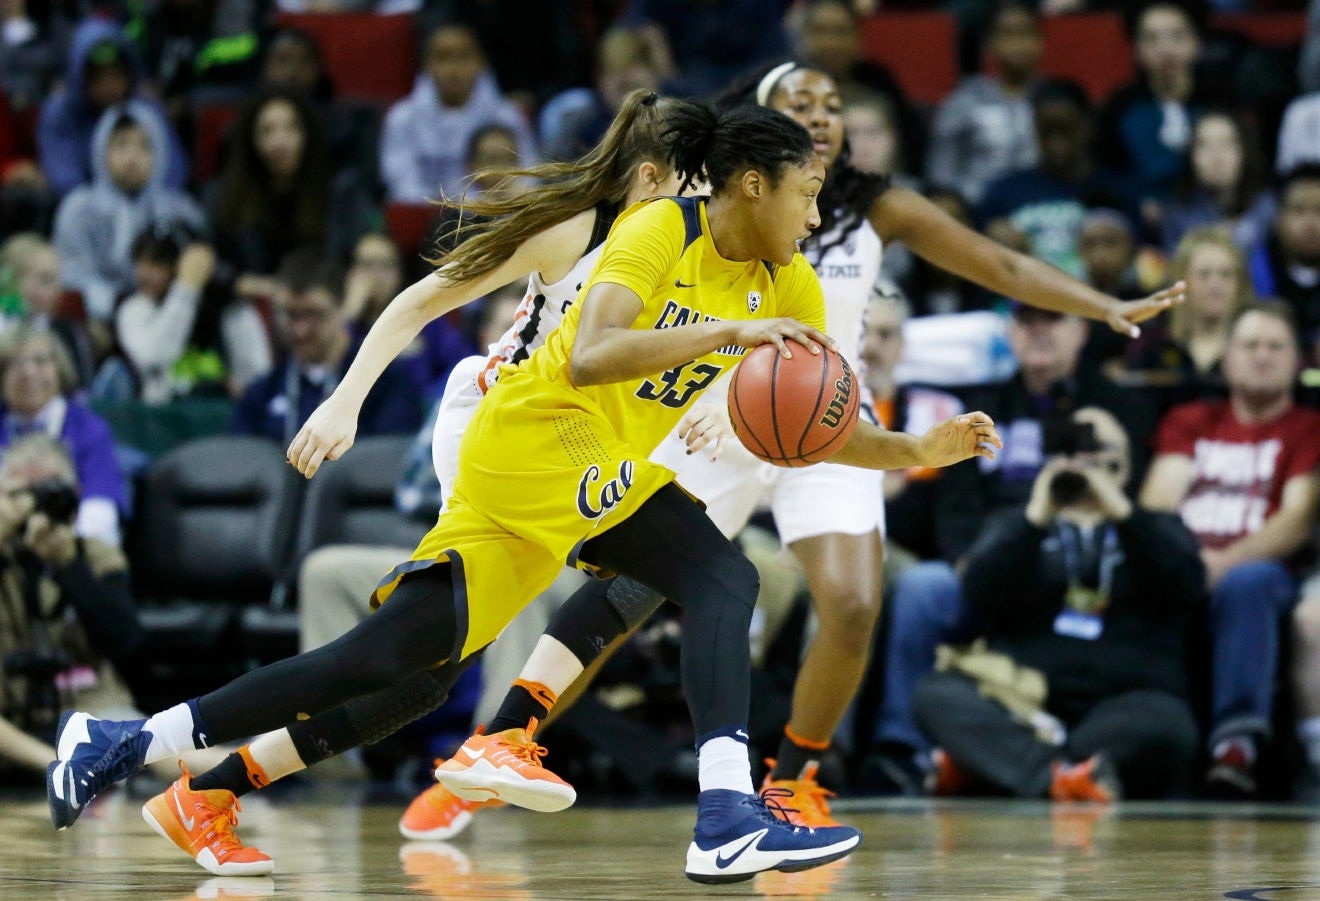 California forward Jaelyn Brown drives against Oregon State in the first half of an NCAA college basketball game in the Pac-12 Conference tournament, Friday, March 3, 2017, in Seattle. (AP Photo/Ted S. Warren)